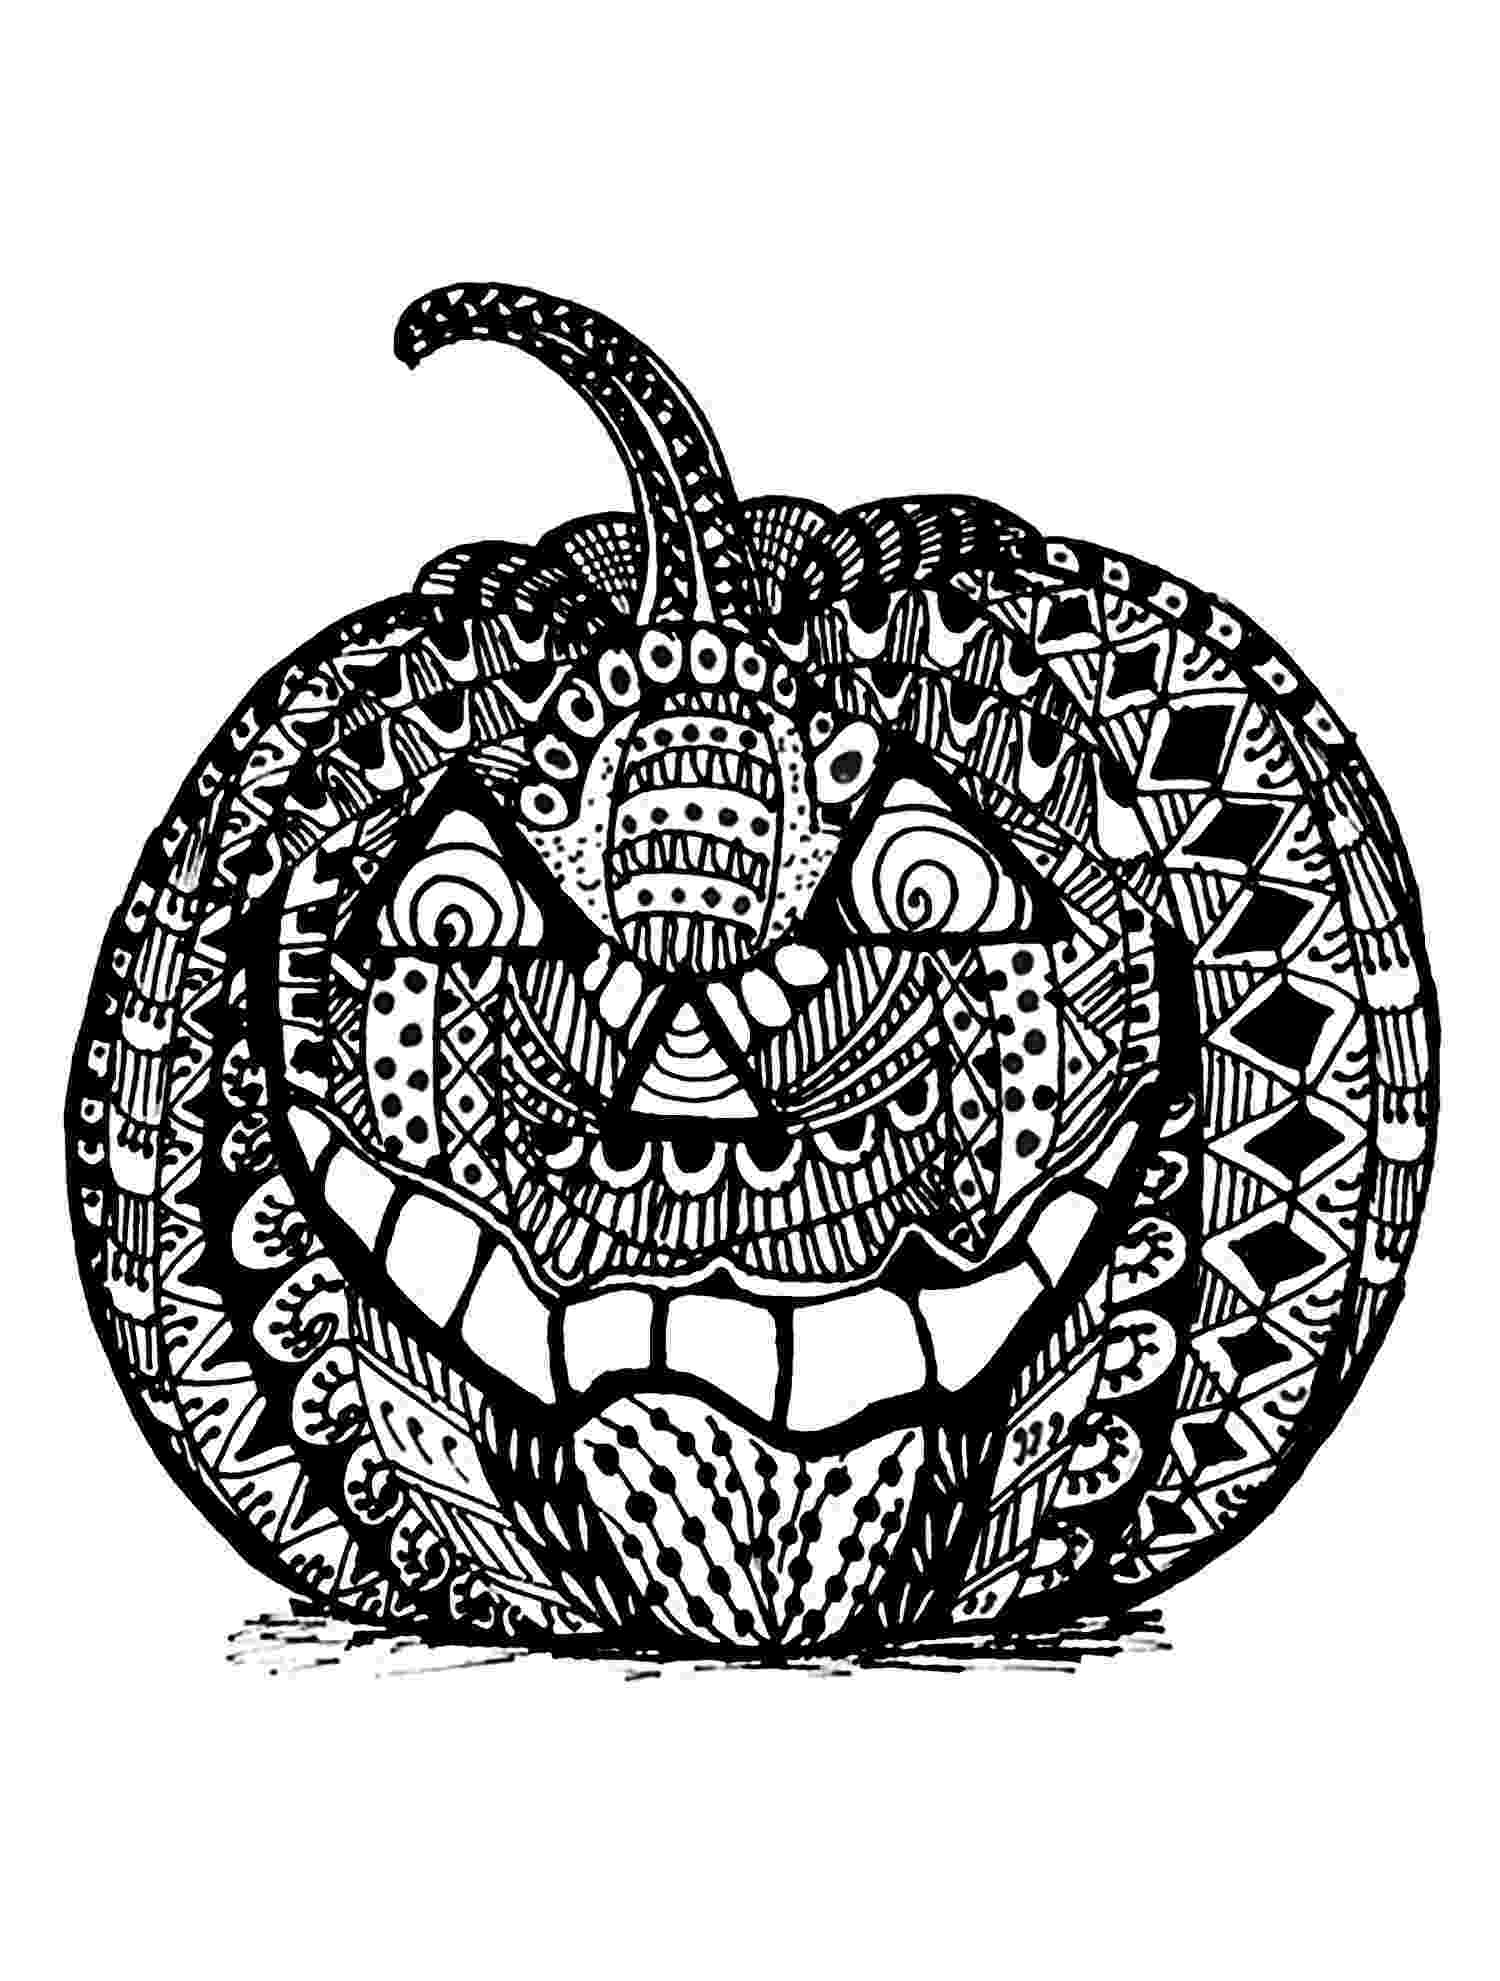 coloring pages for adults halloween halloween big haunted house halloween adult coloring pages for coloring pages halloween adults